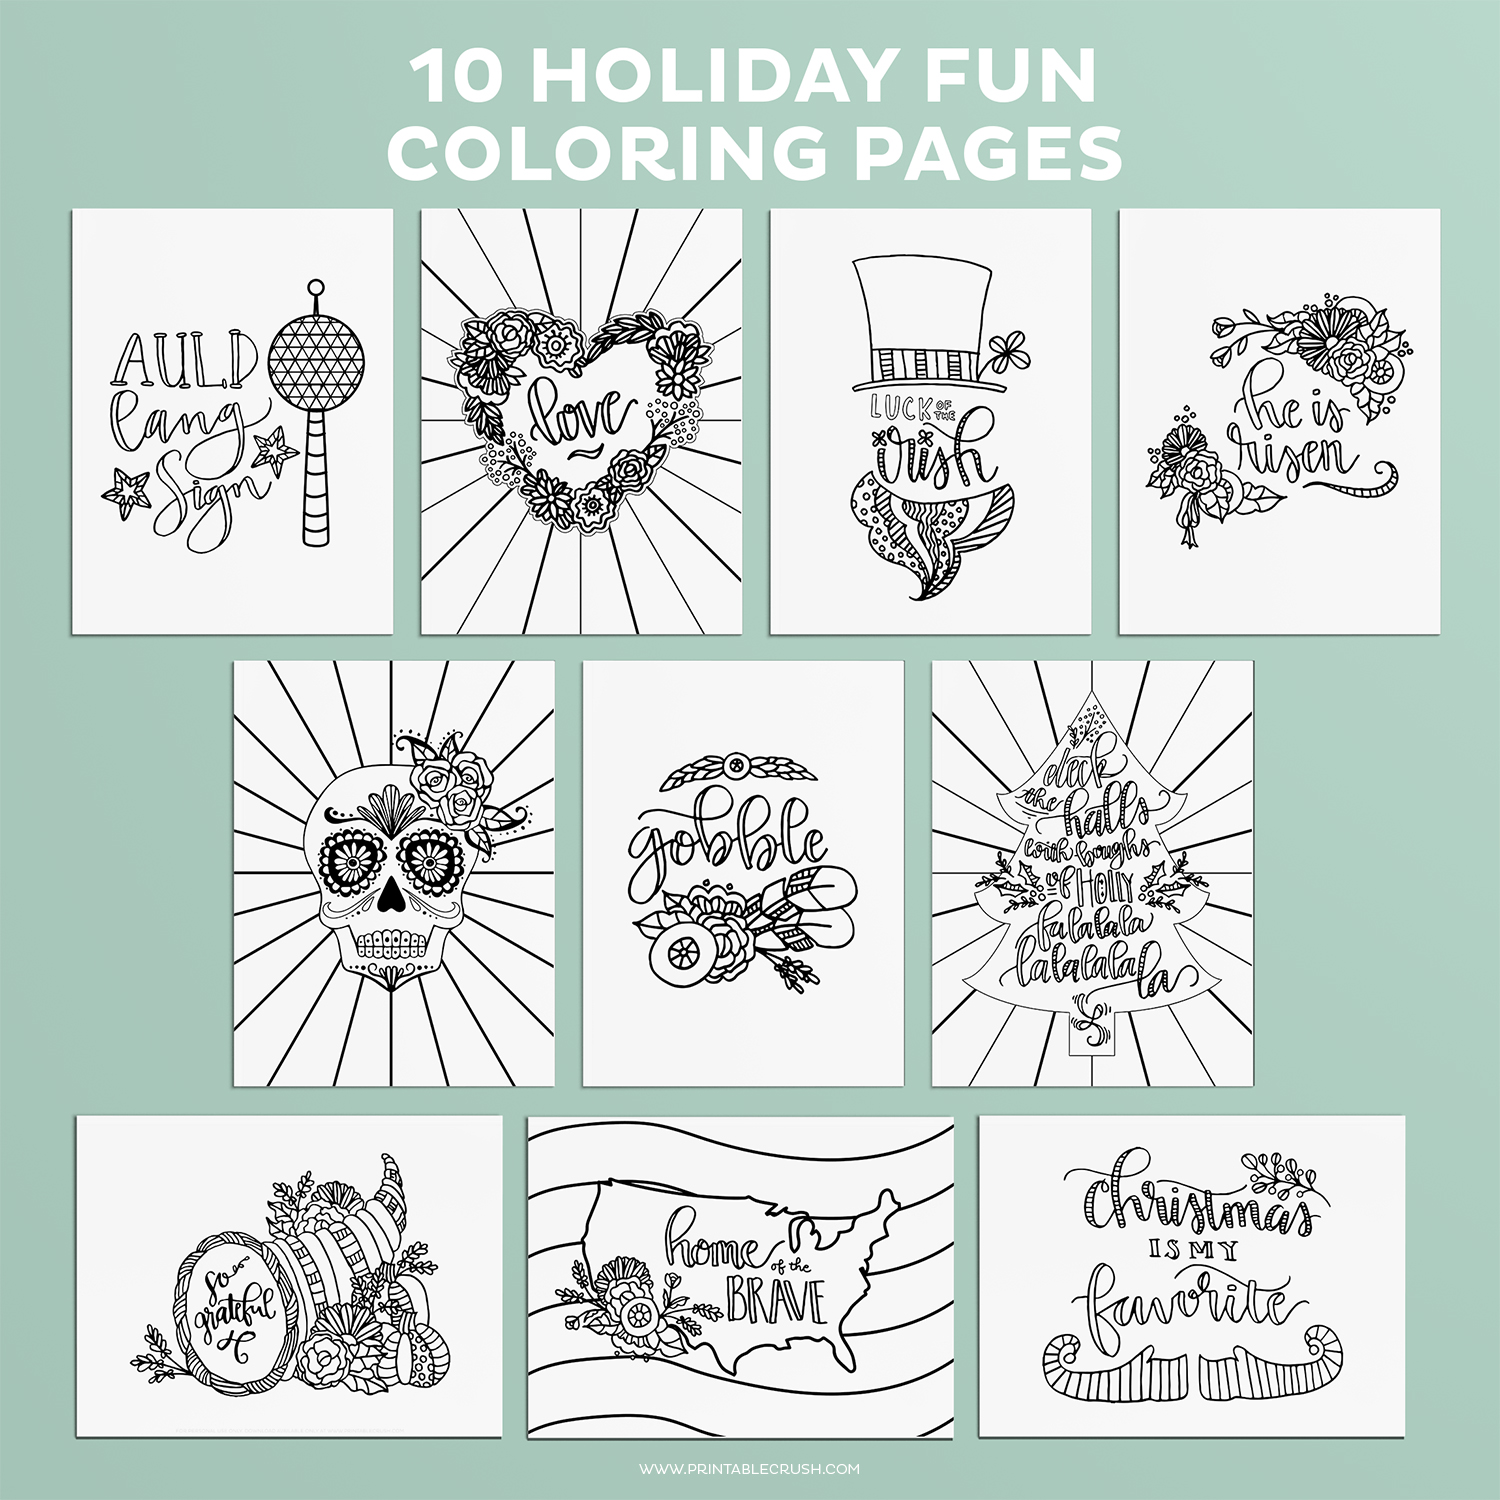 Holiday Fun Coloring Pages Printable Crush